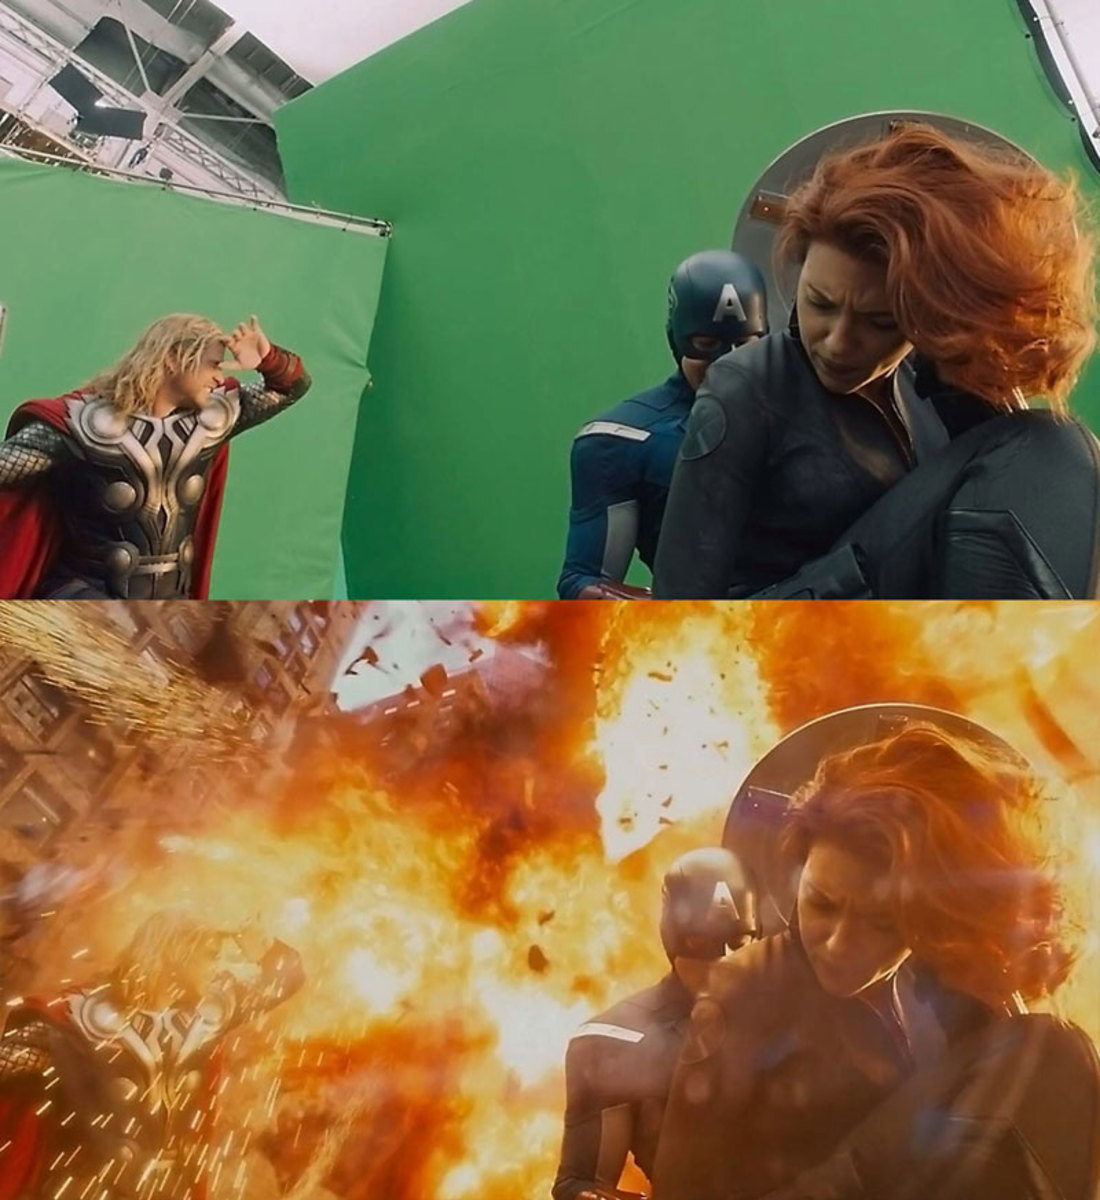 before-and-after-shots-that-demonstrate-the-power-of-visual-effects-18